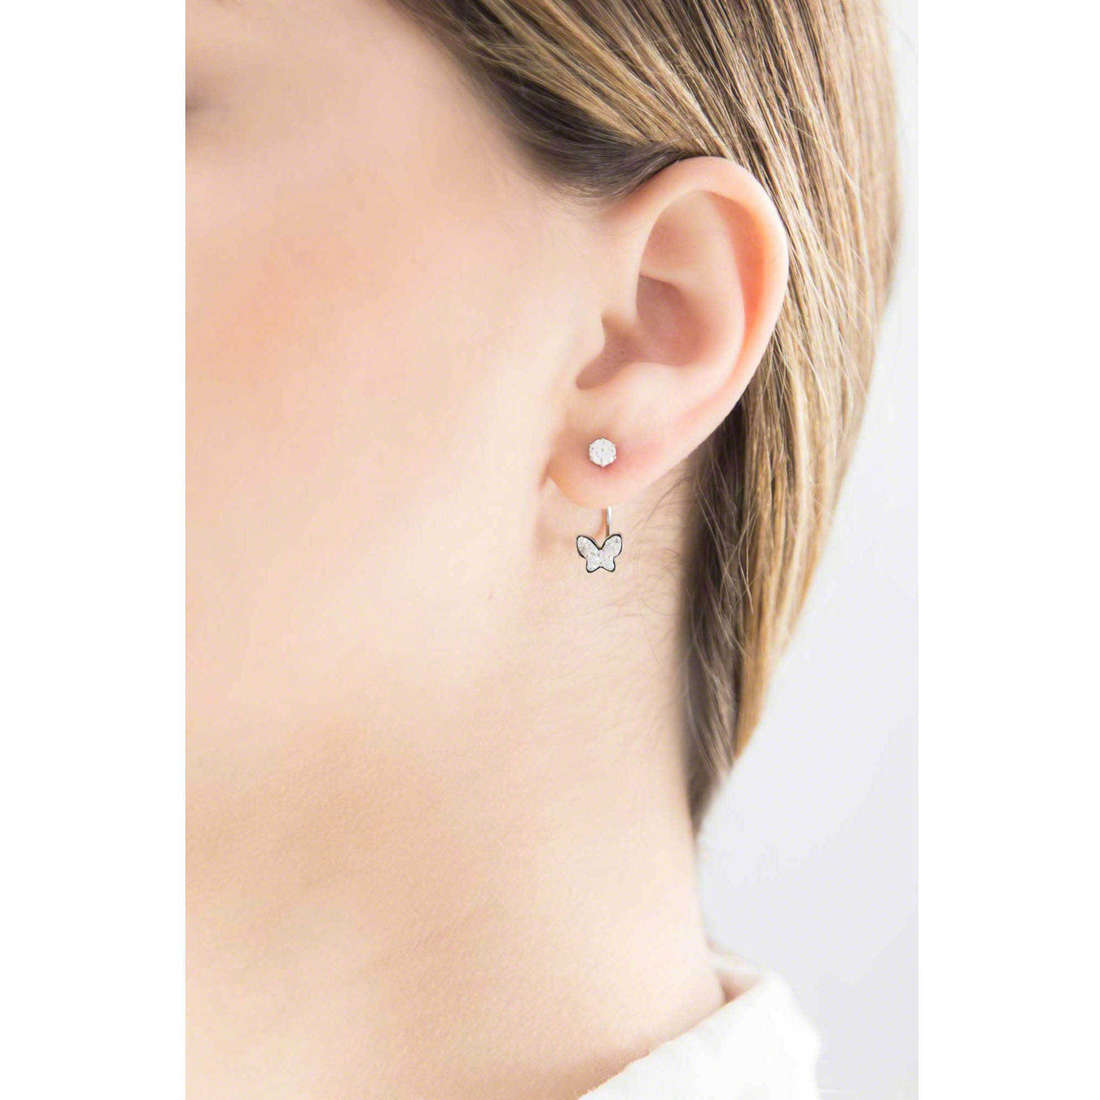 Marlù boucles d'oreille Time To femme 18OR034 indosso